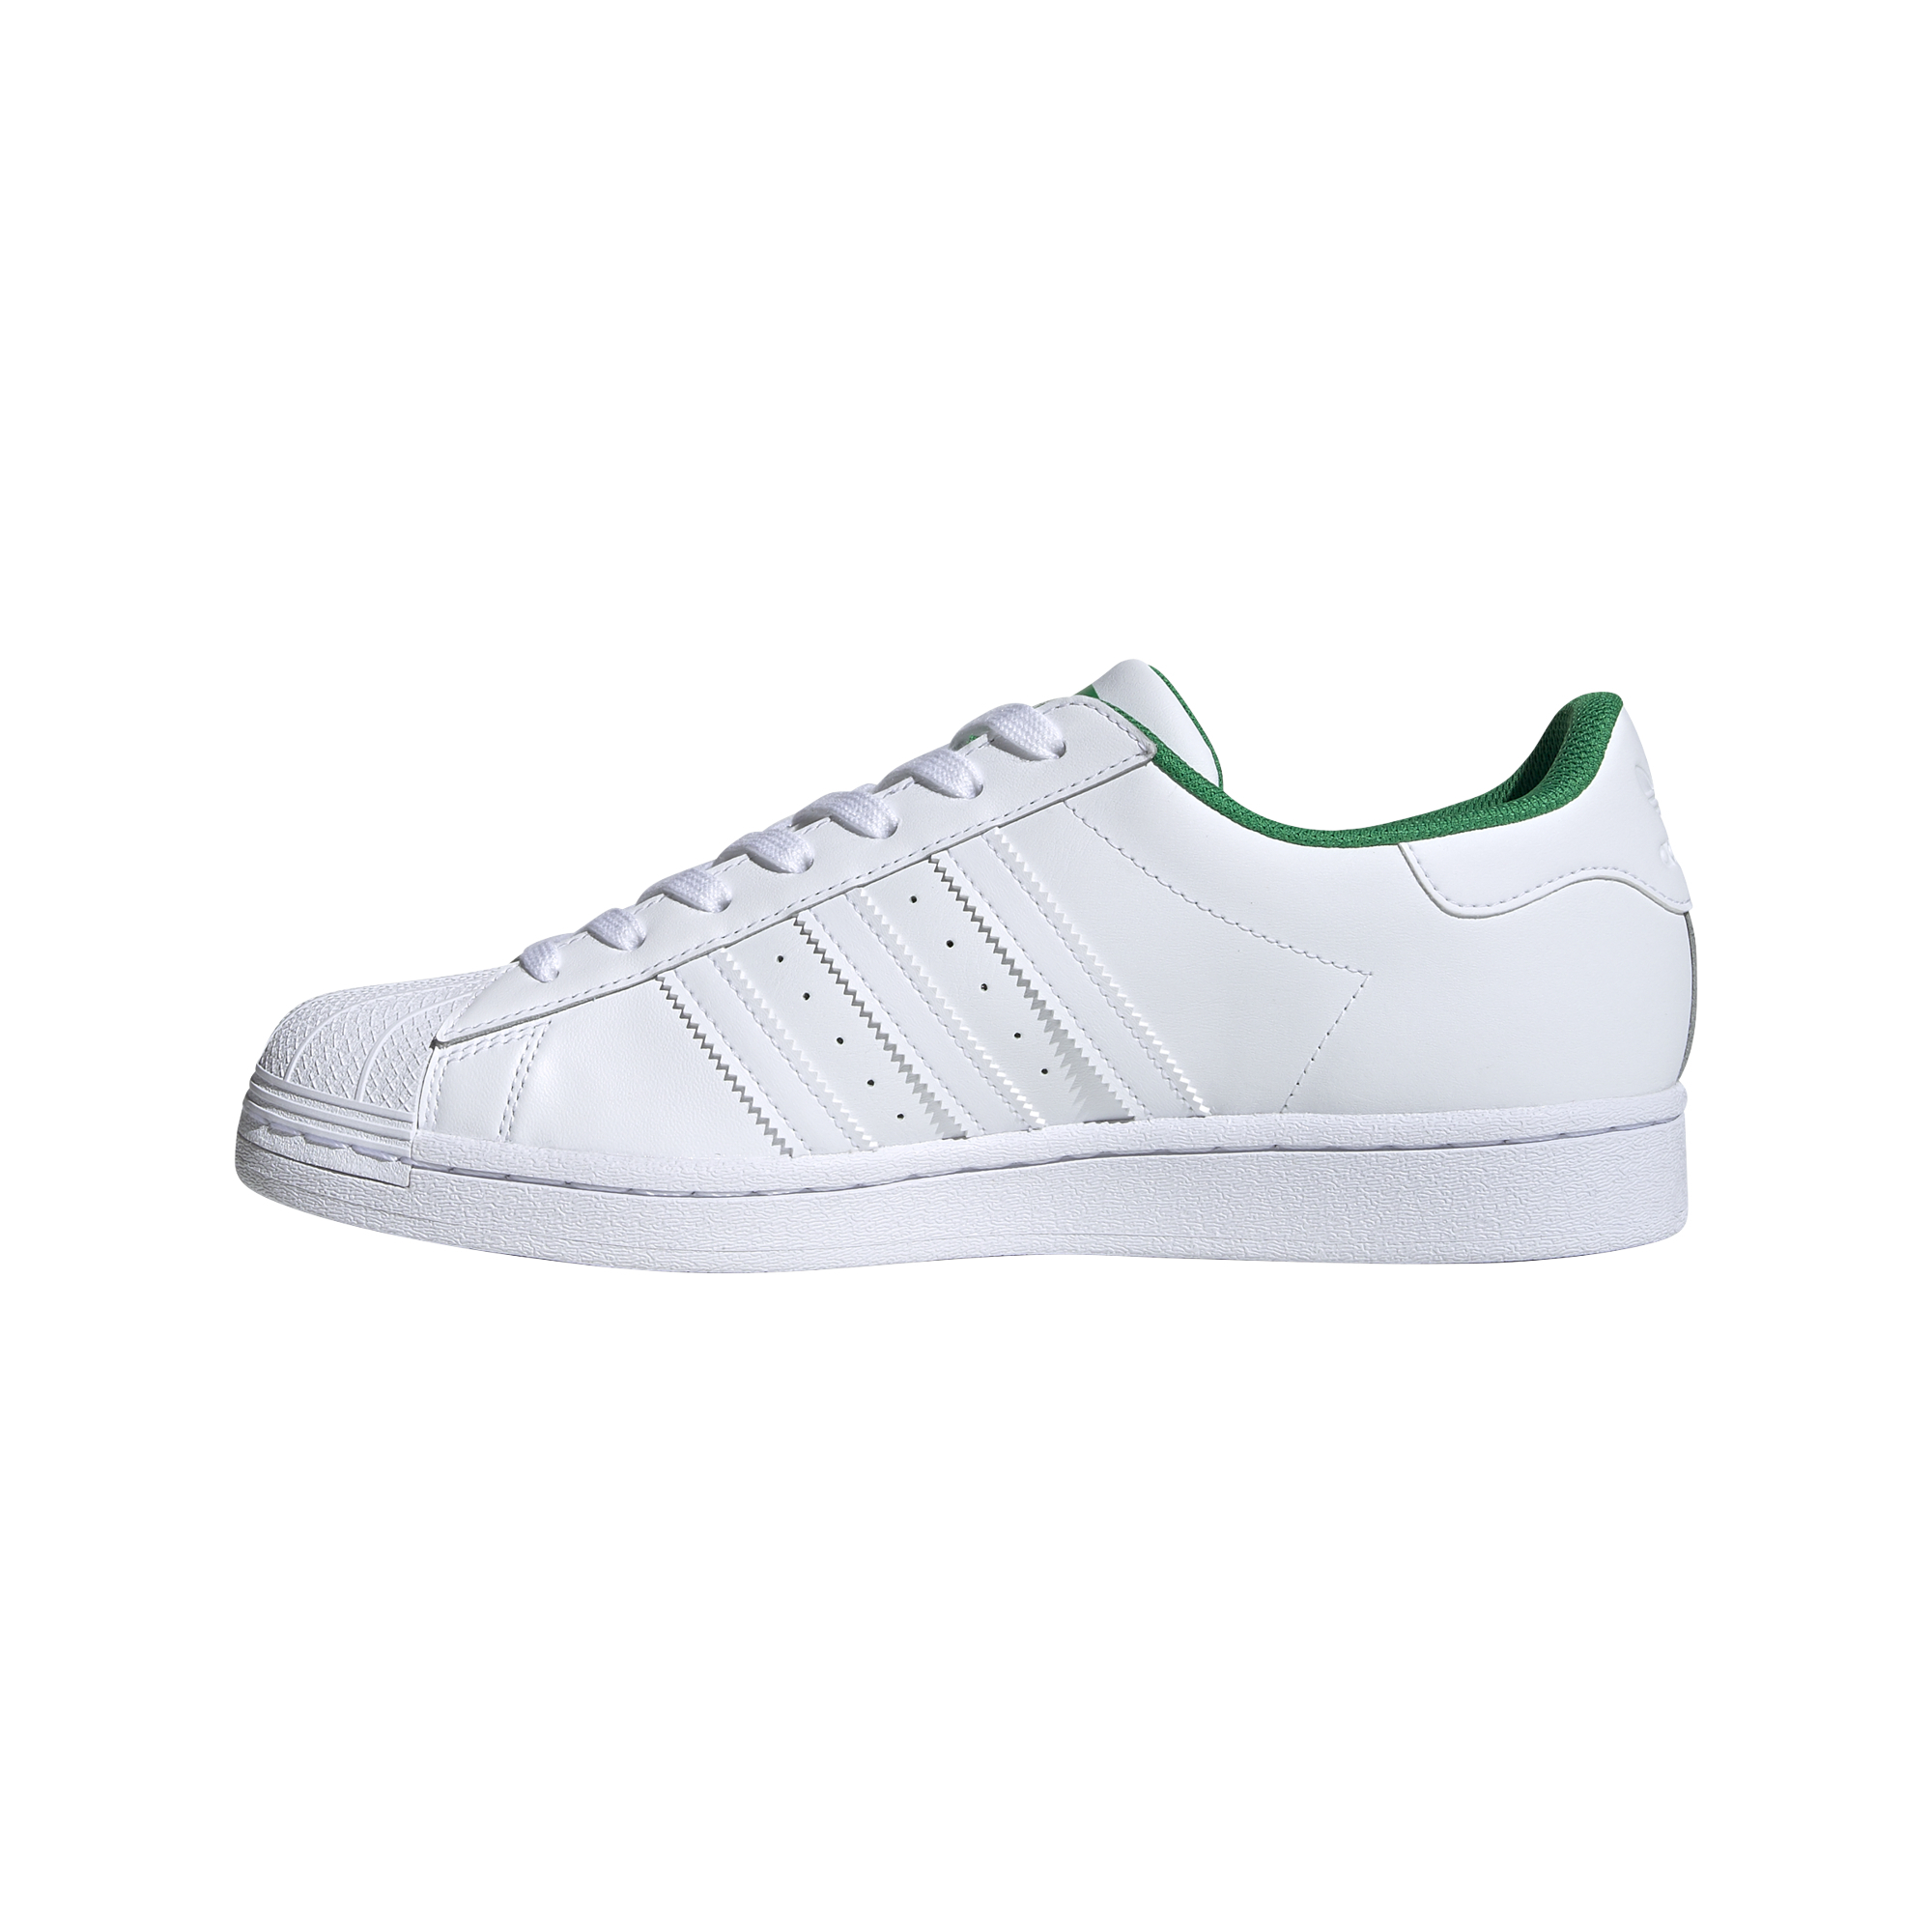 adidas Superstar Ftw White/ Ftw White/ Green EUR 42